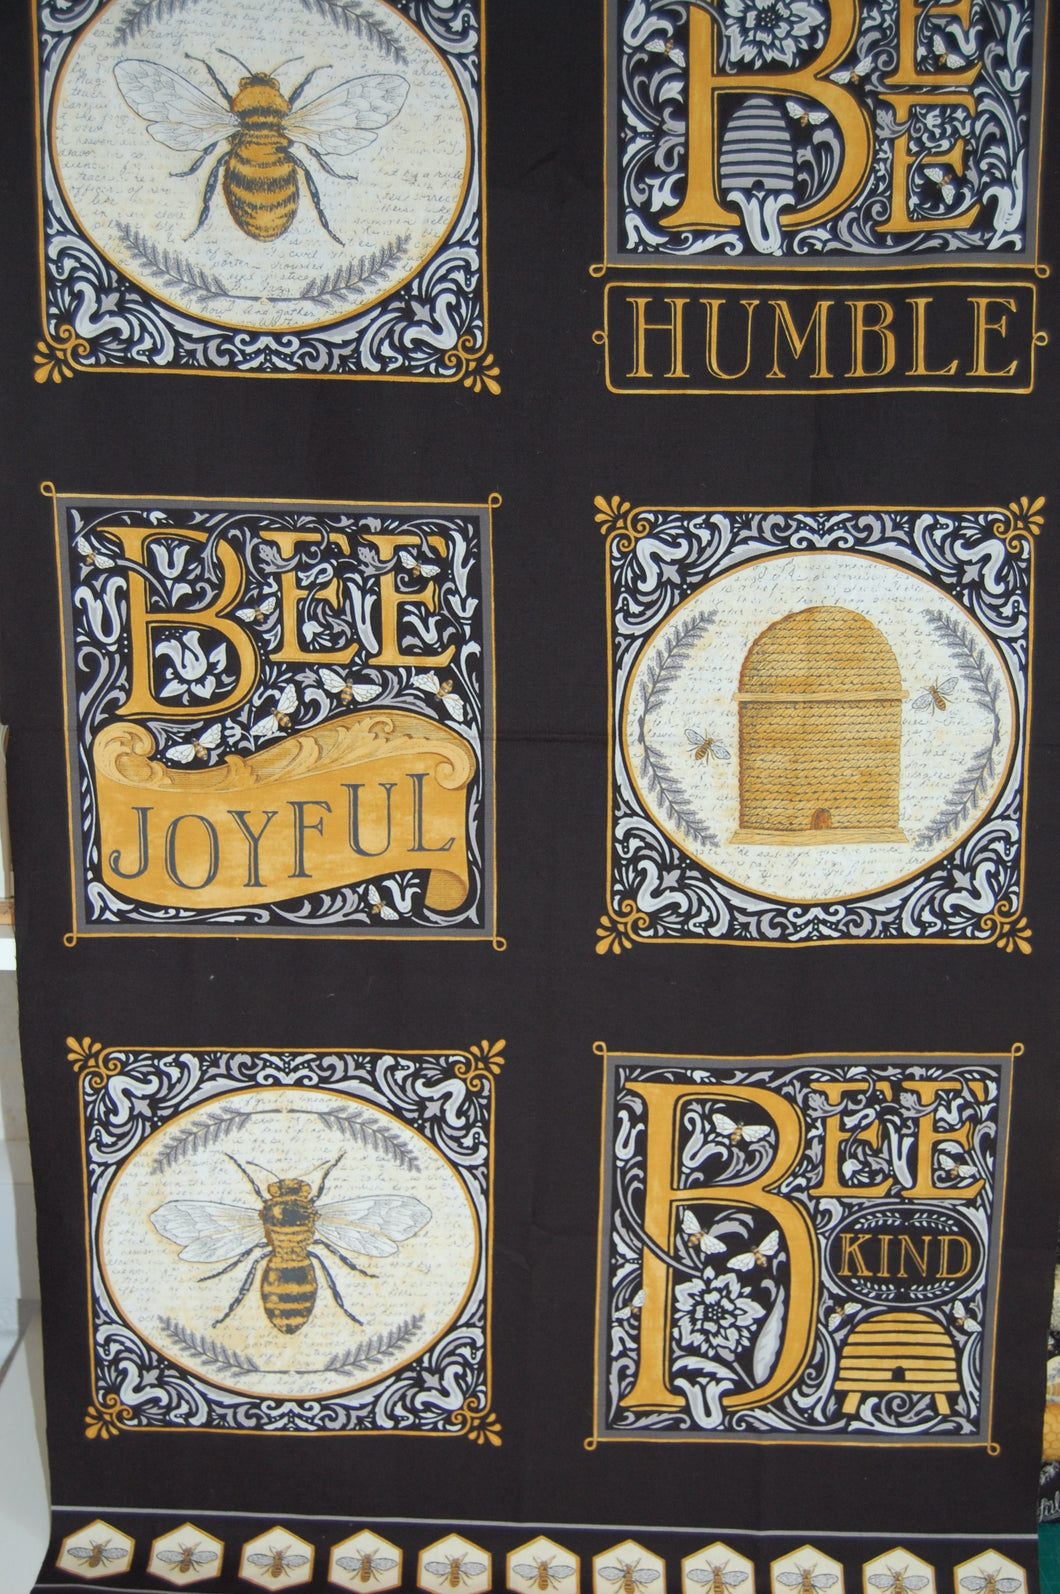 fabric shack sewing quilting sew fat quarter cotton quilt patchwork dressmaking deb strain moda bee joyful bumble hive script panel honeycomb yellow gold black cream (14)